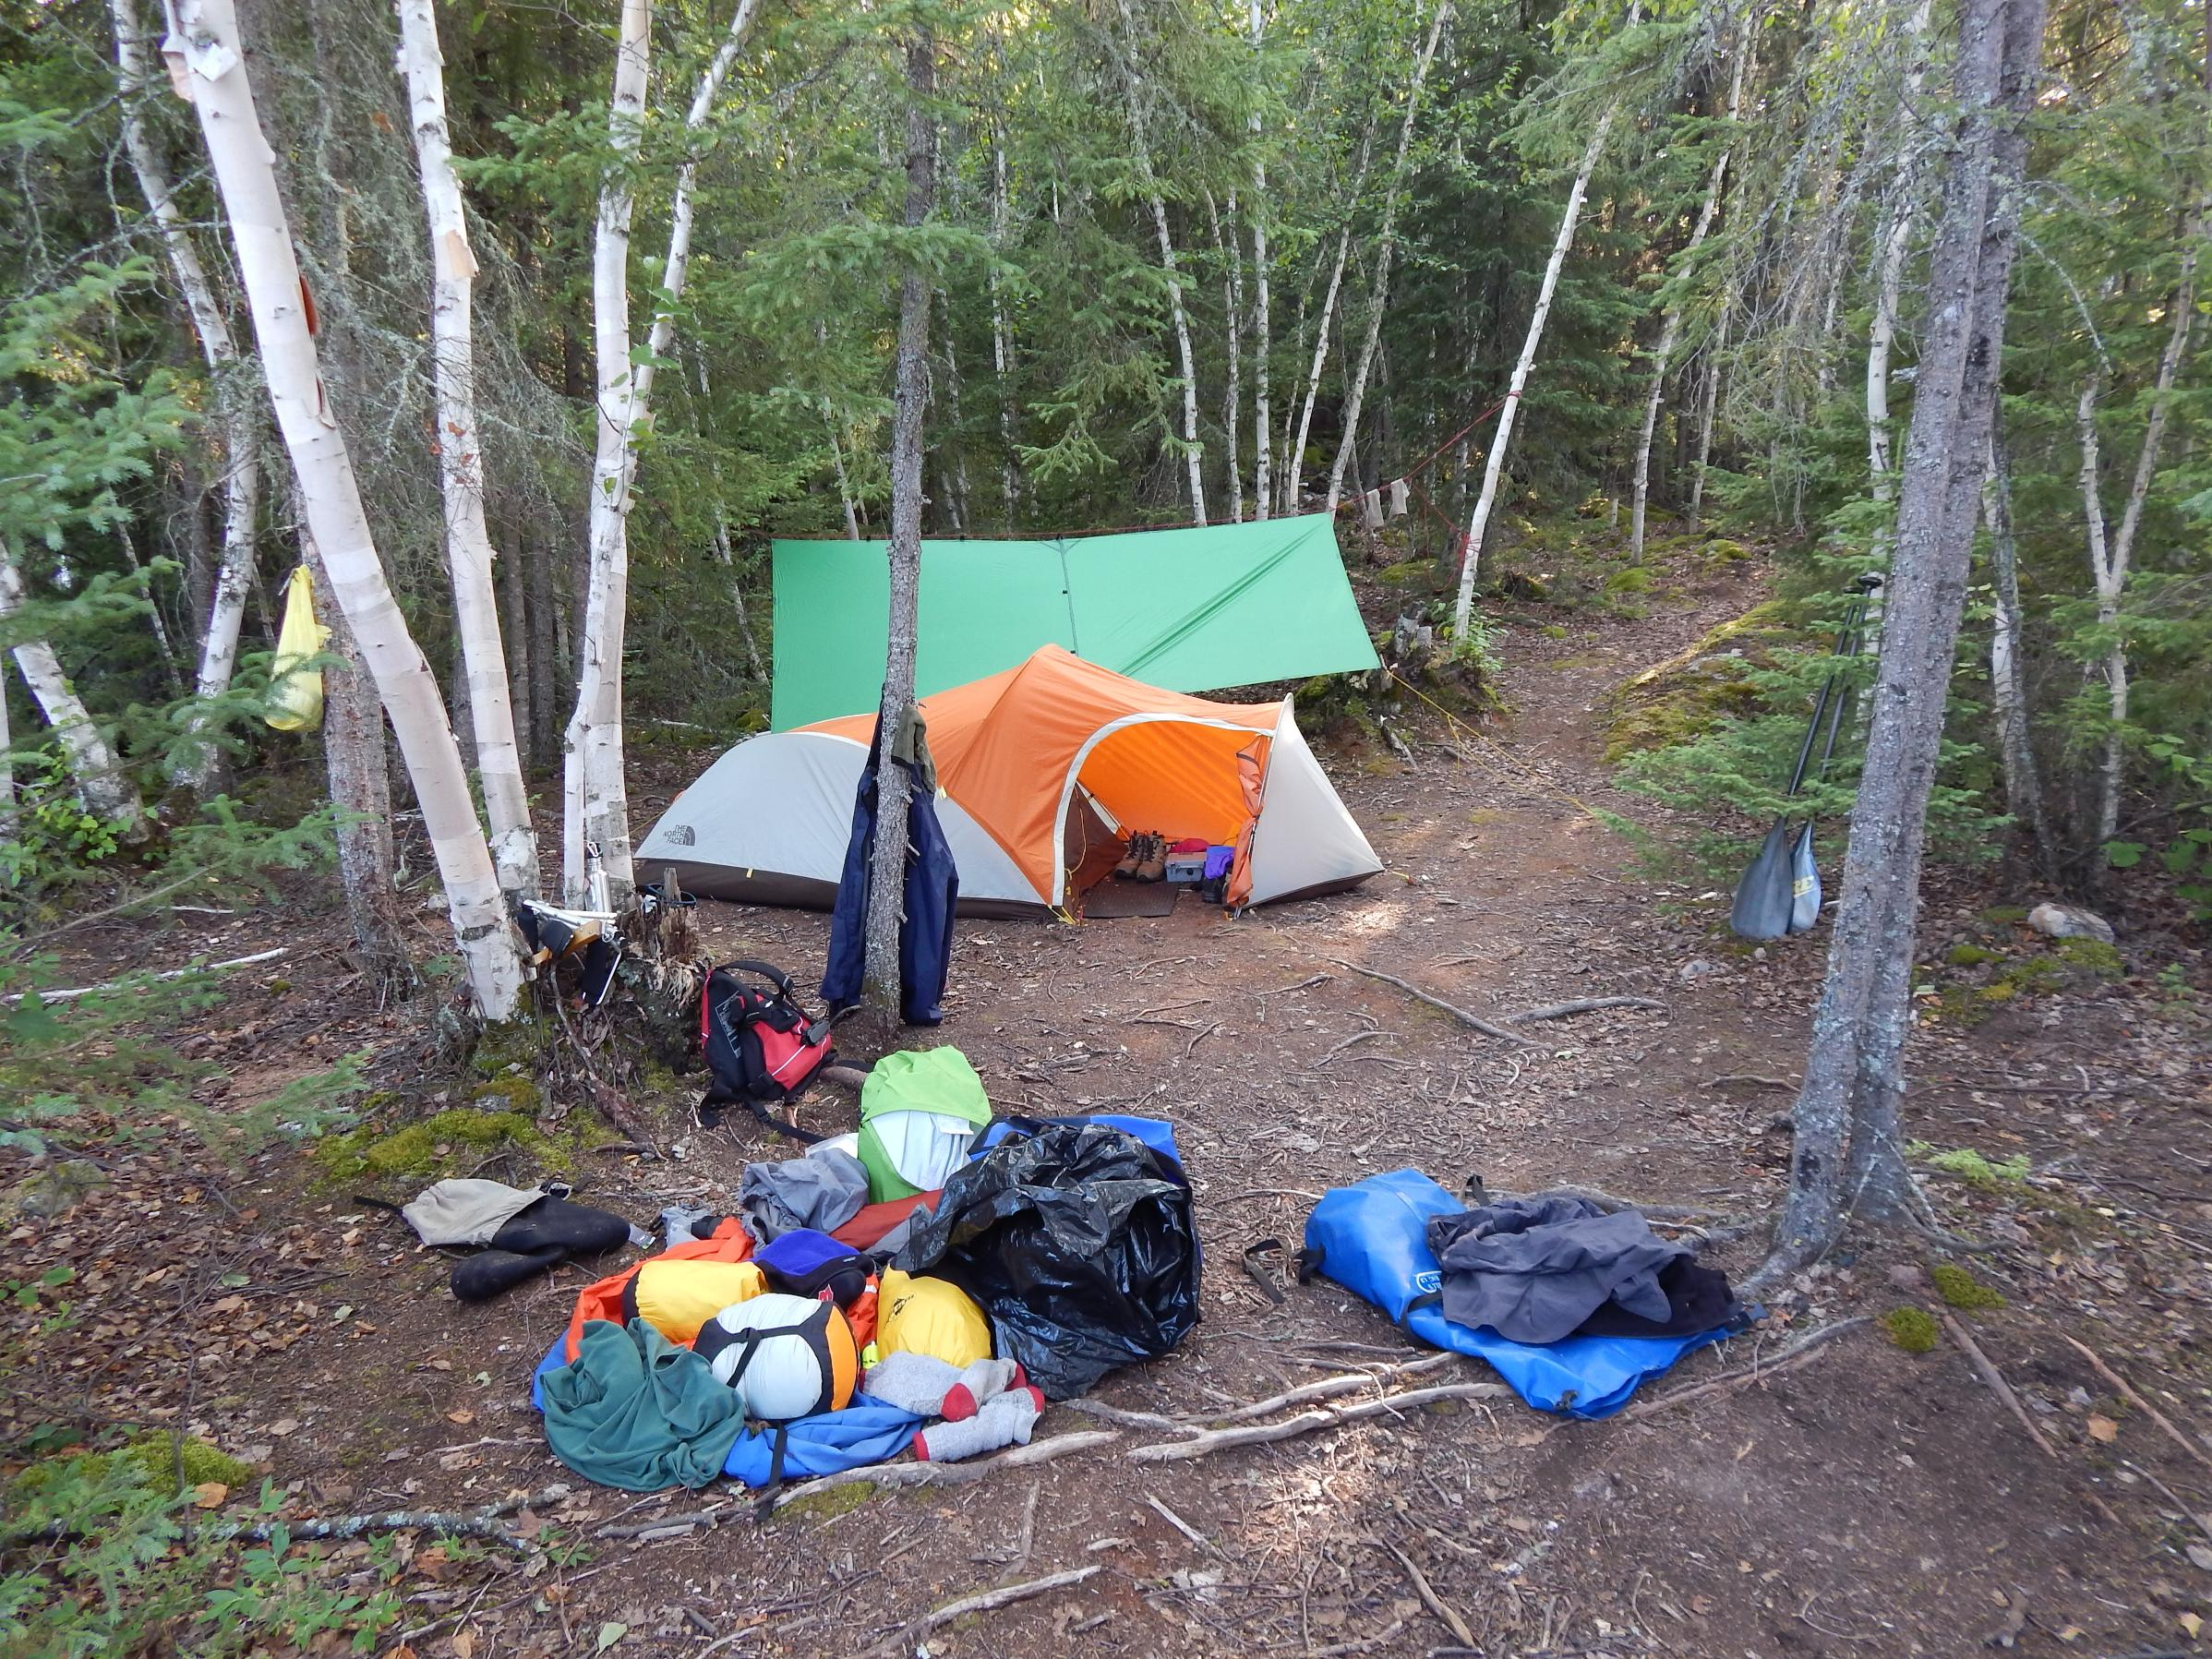 (From left to right; 1980u0027s NorthFace Tadpole 23 updated version of Tadpole 23 North Face  Big Fat Frog North Face VE-25. Seirra Designs Nomad 4.2 ... & Boundary Waters Message Board Forum BWCA BWCAW Quetico Park